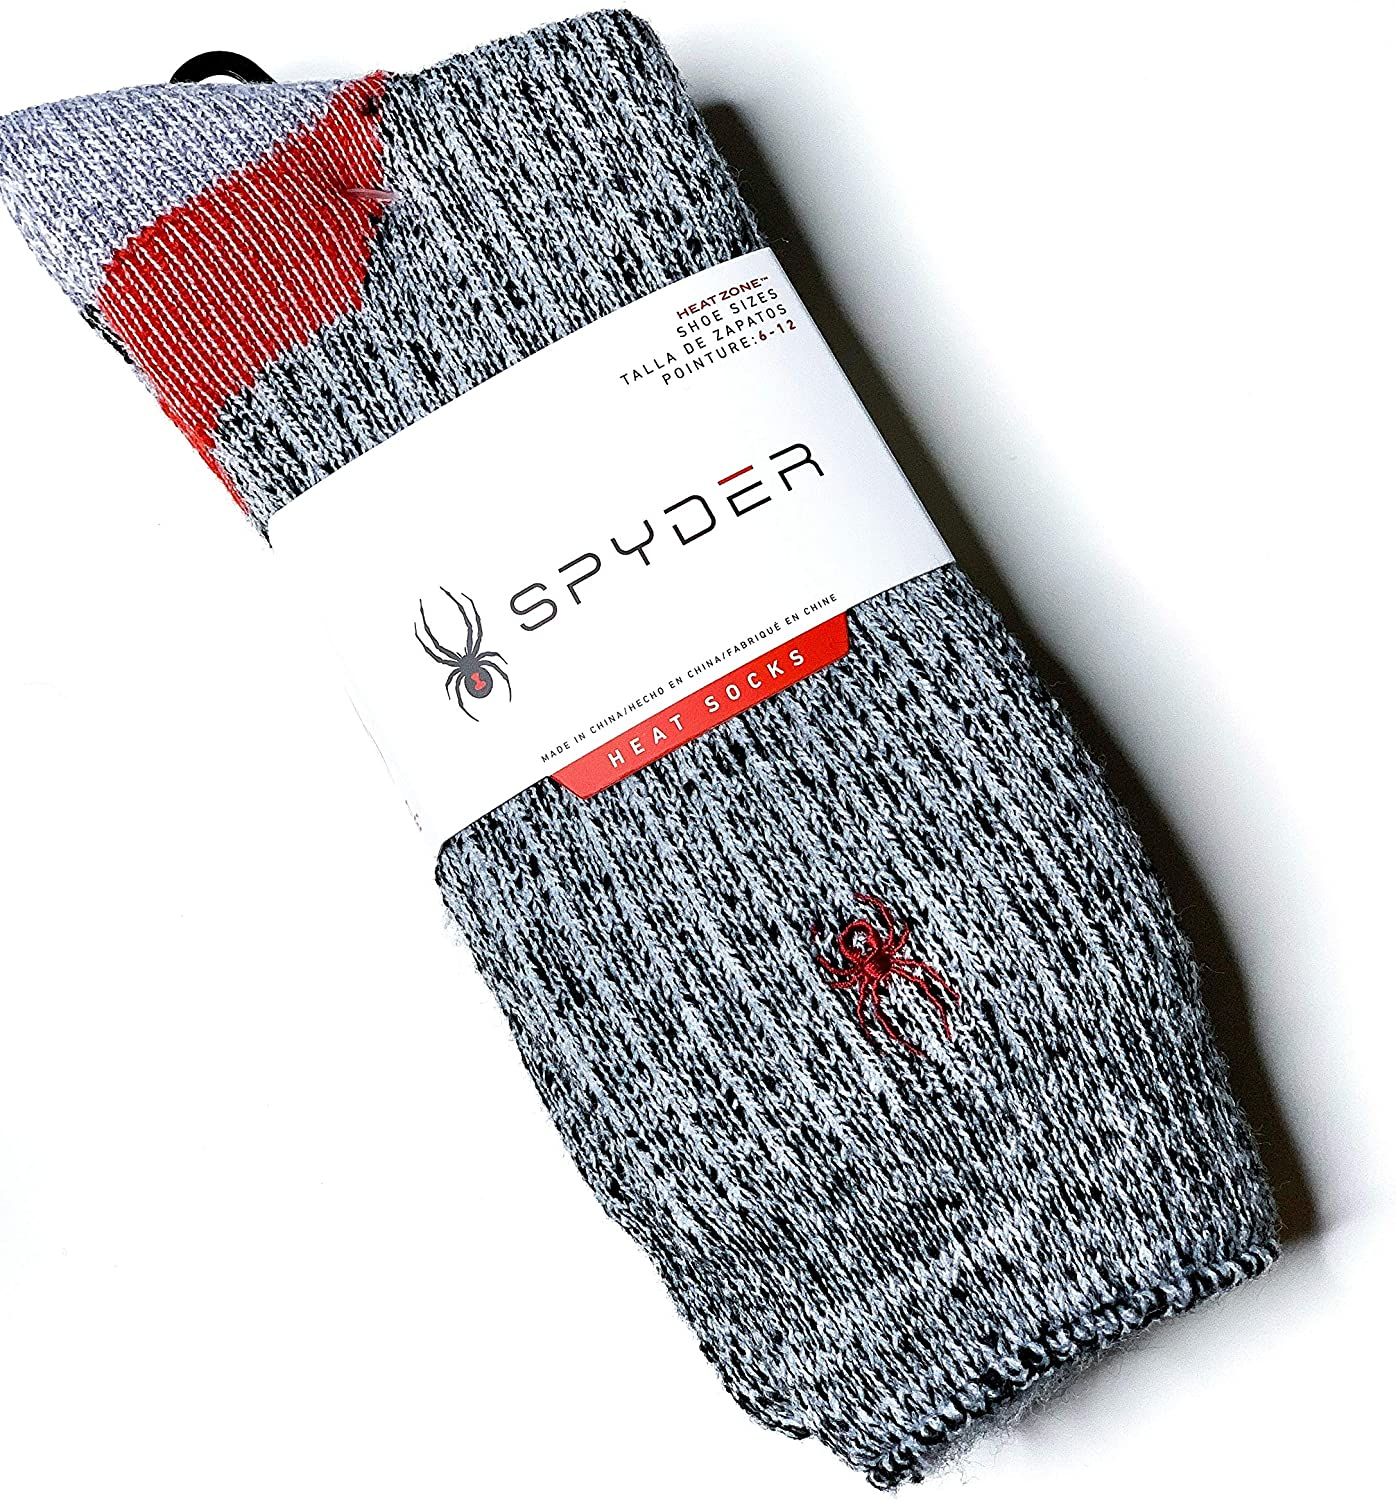 Spyder 1-pair Heat Socks Gray Heather with Red Stitched Logo